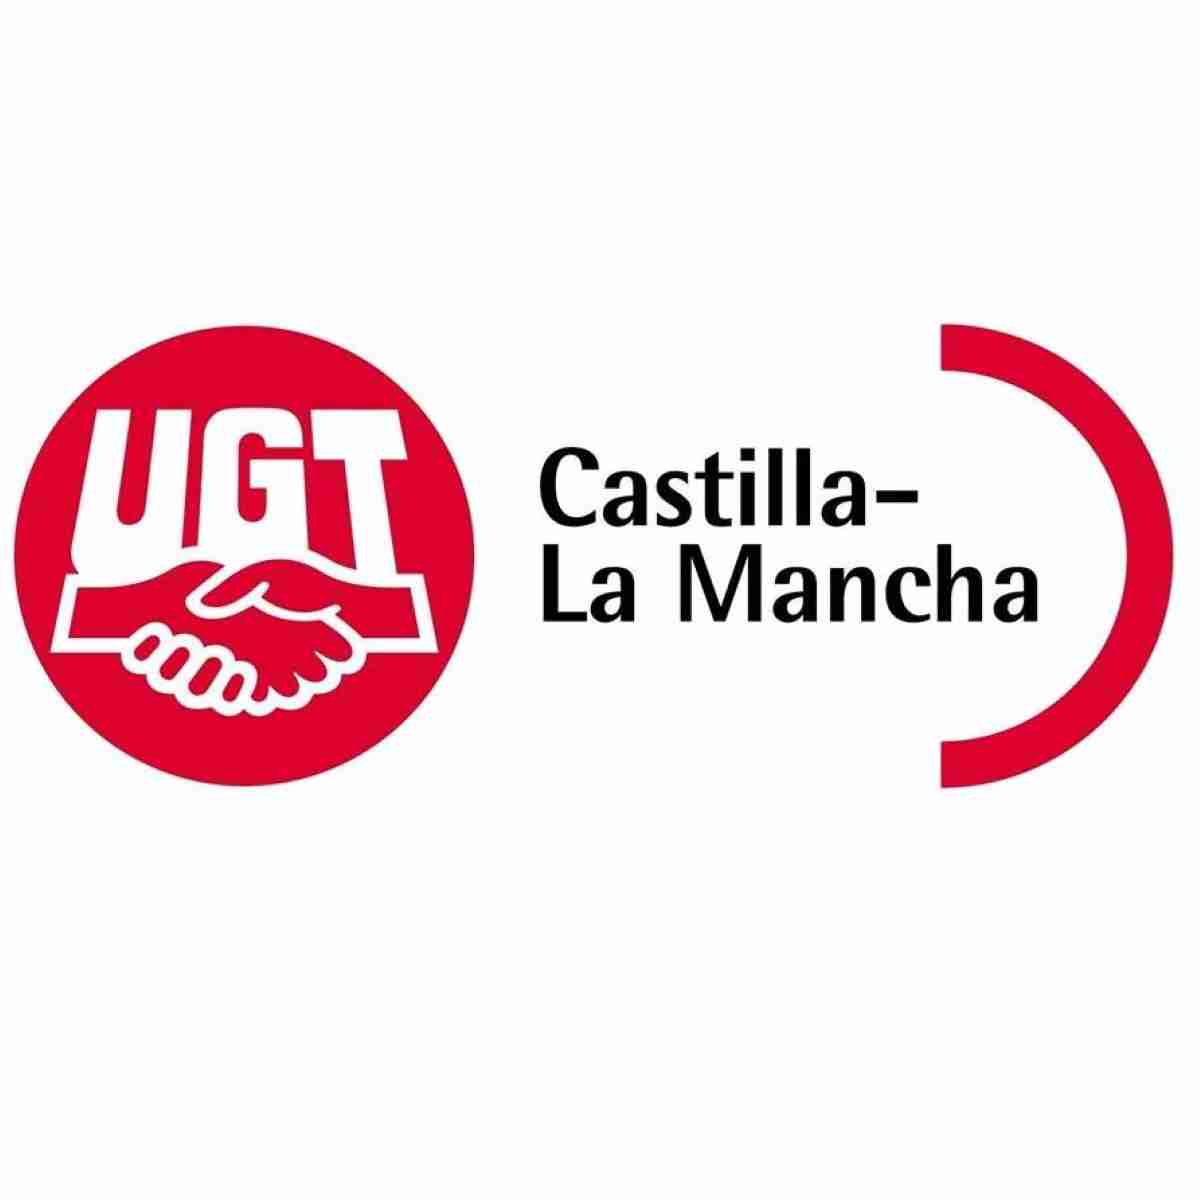 UGT denuncia aumento accidentes laborales mortales